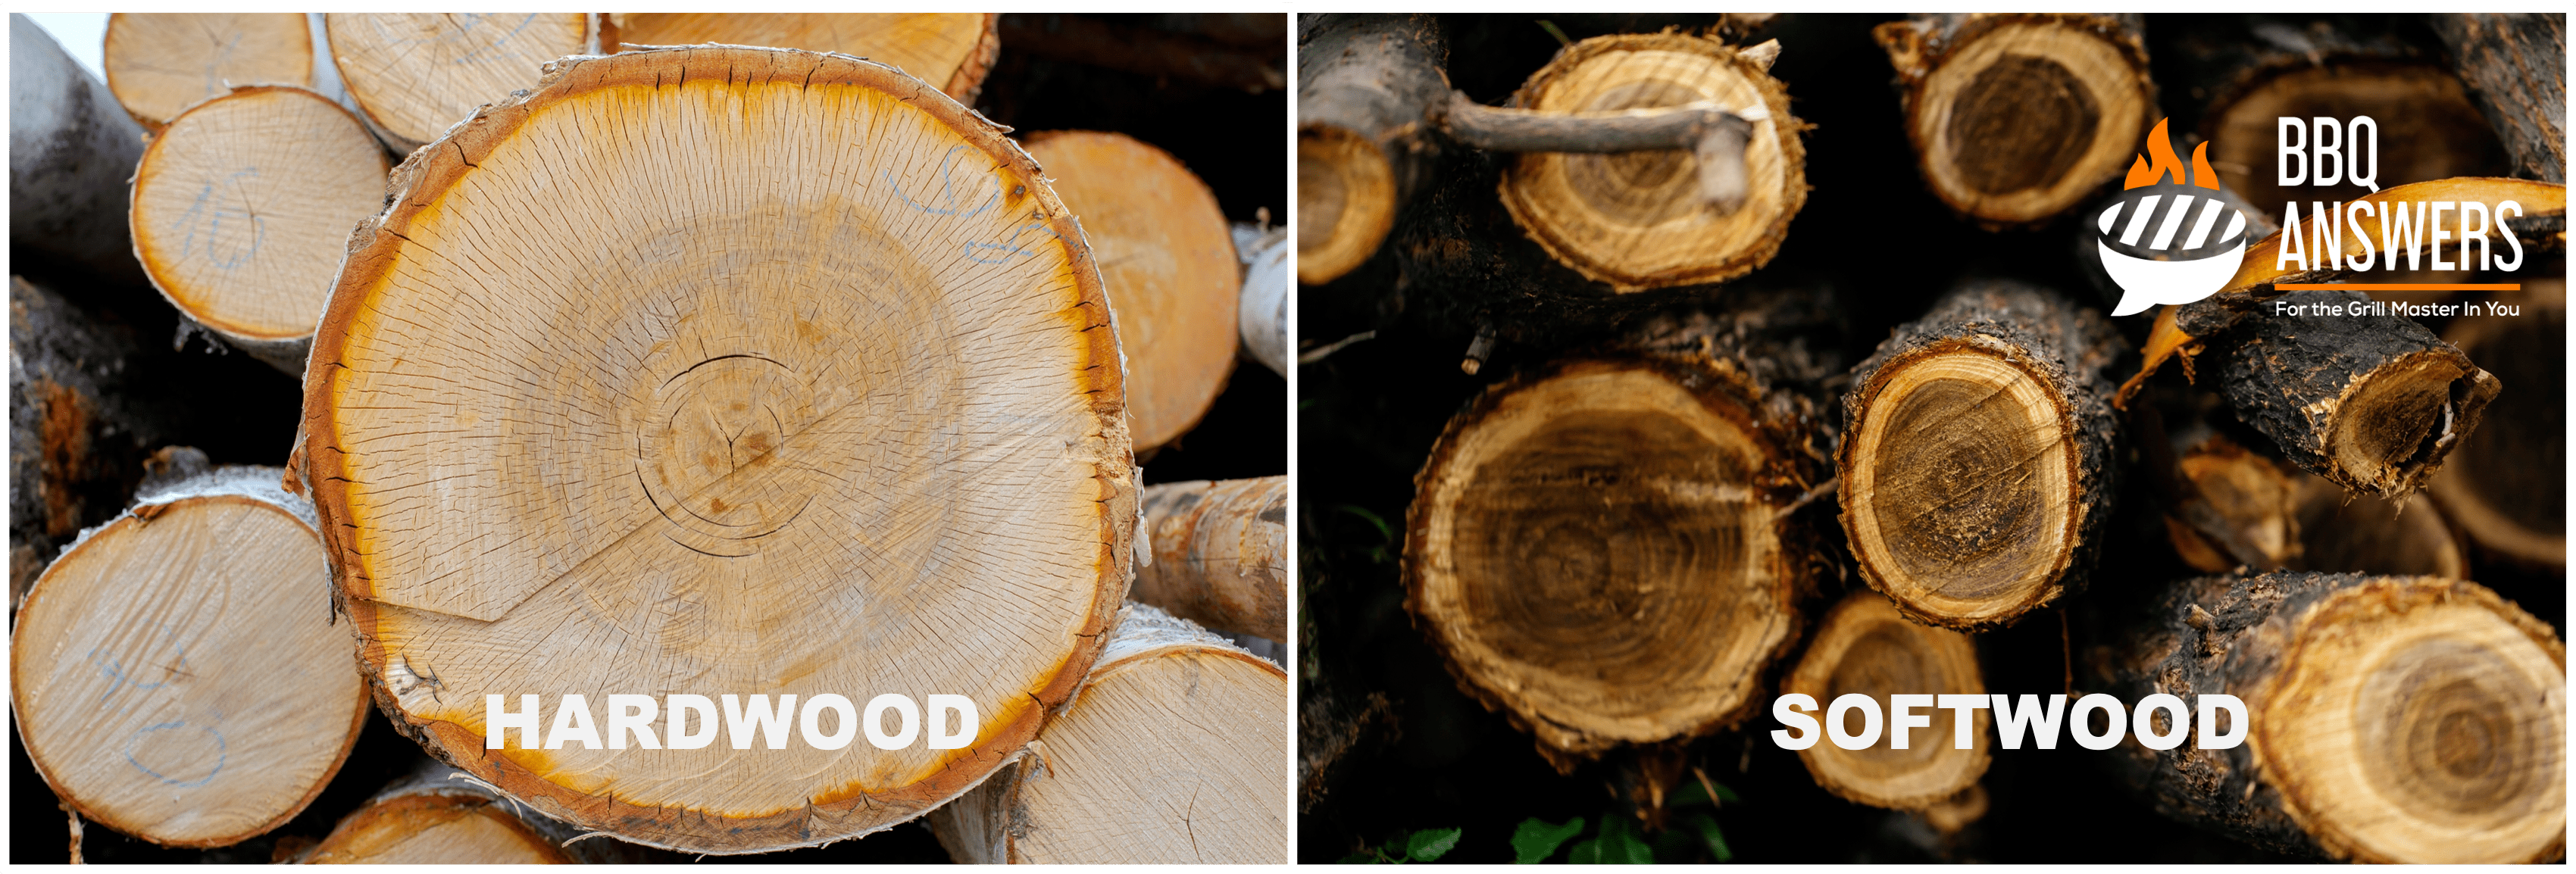 Softwood vs Hardwood | Guide to BBQ Wood Selection | BBQanswers